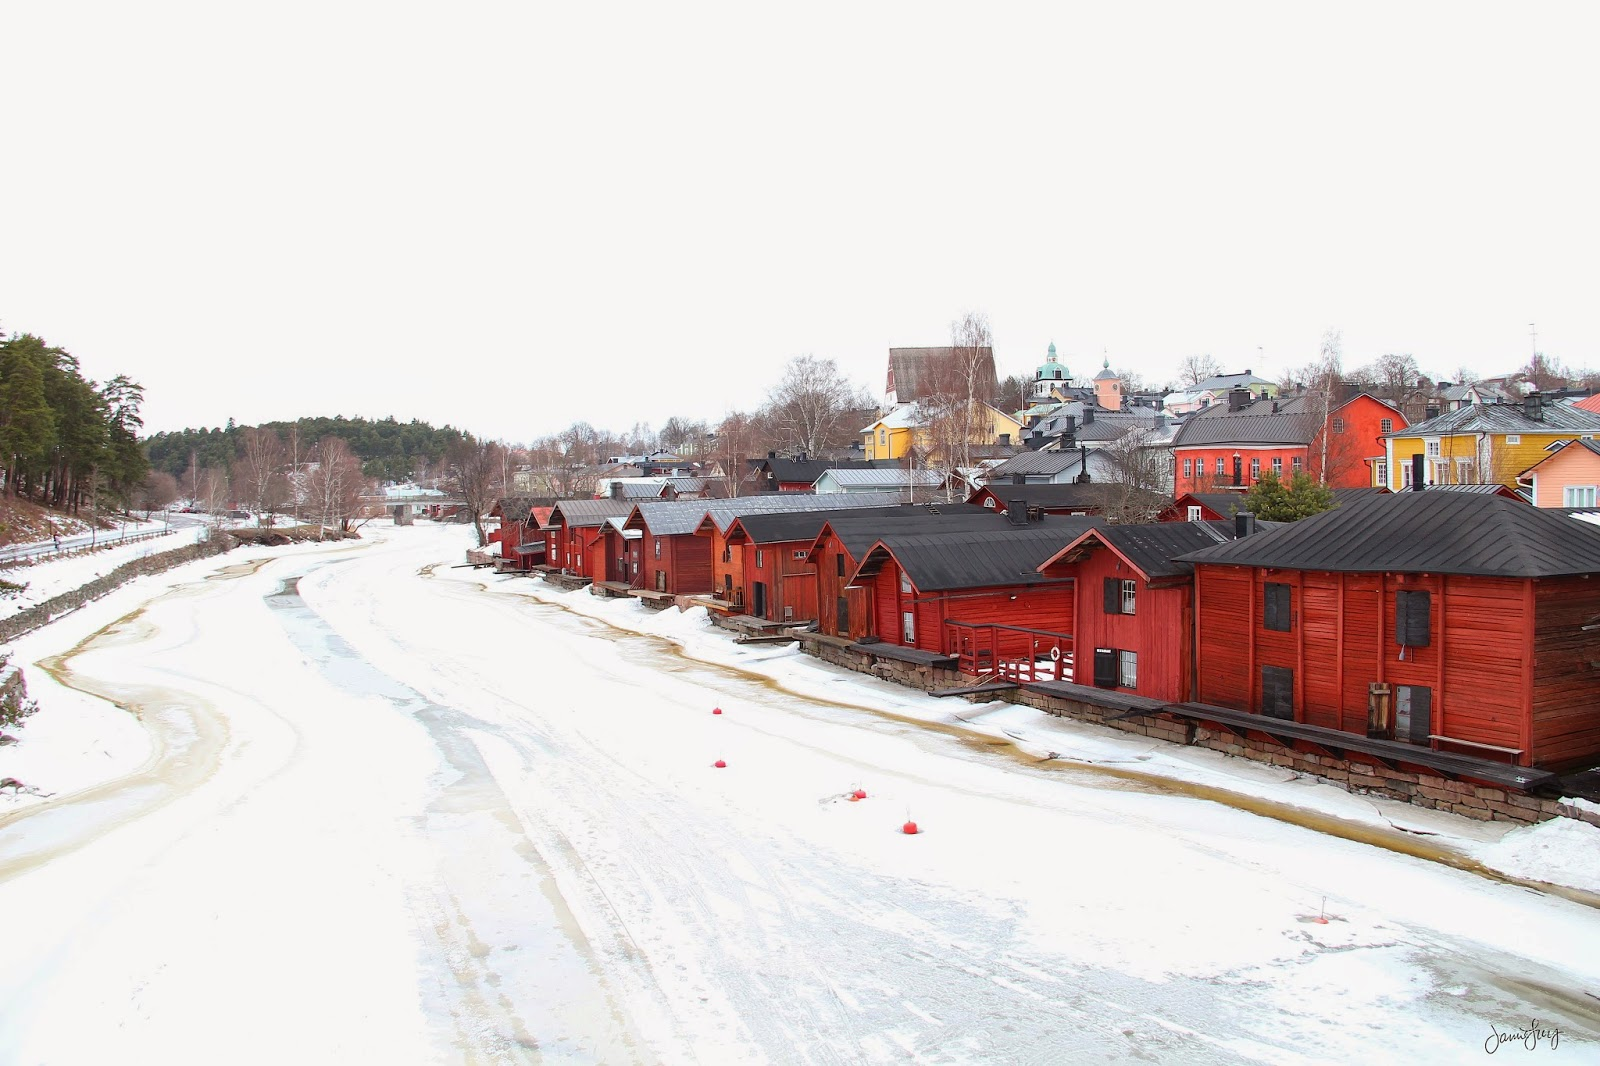 Red Shore Houses on the Porvoo River, Finland